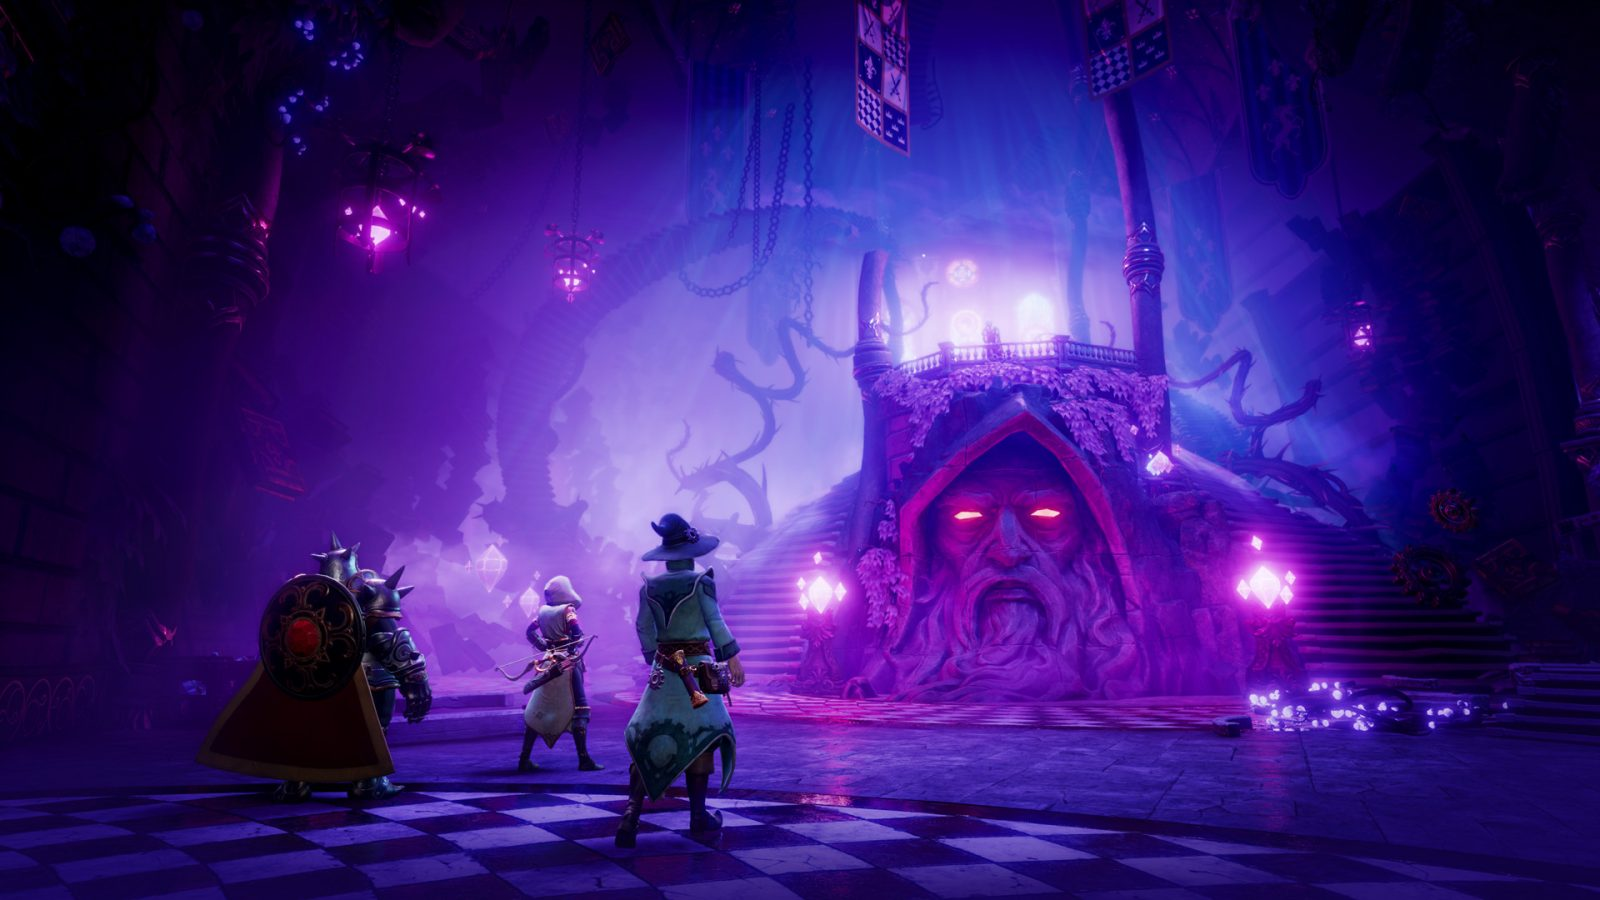 Story Trailer for Trine 4: The Nightmare Prince